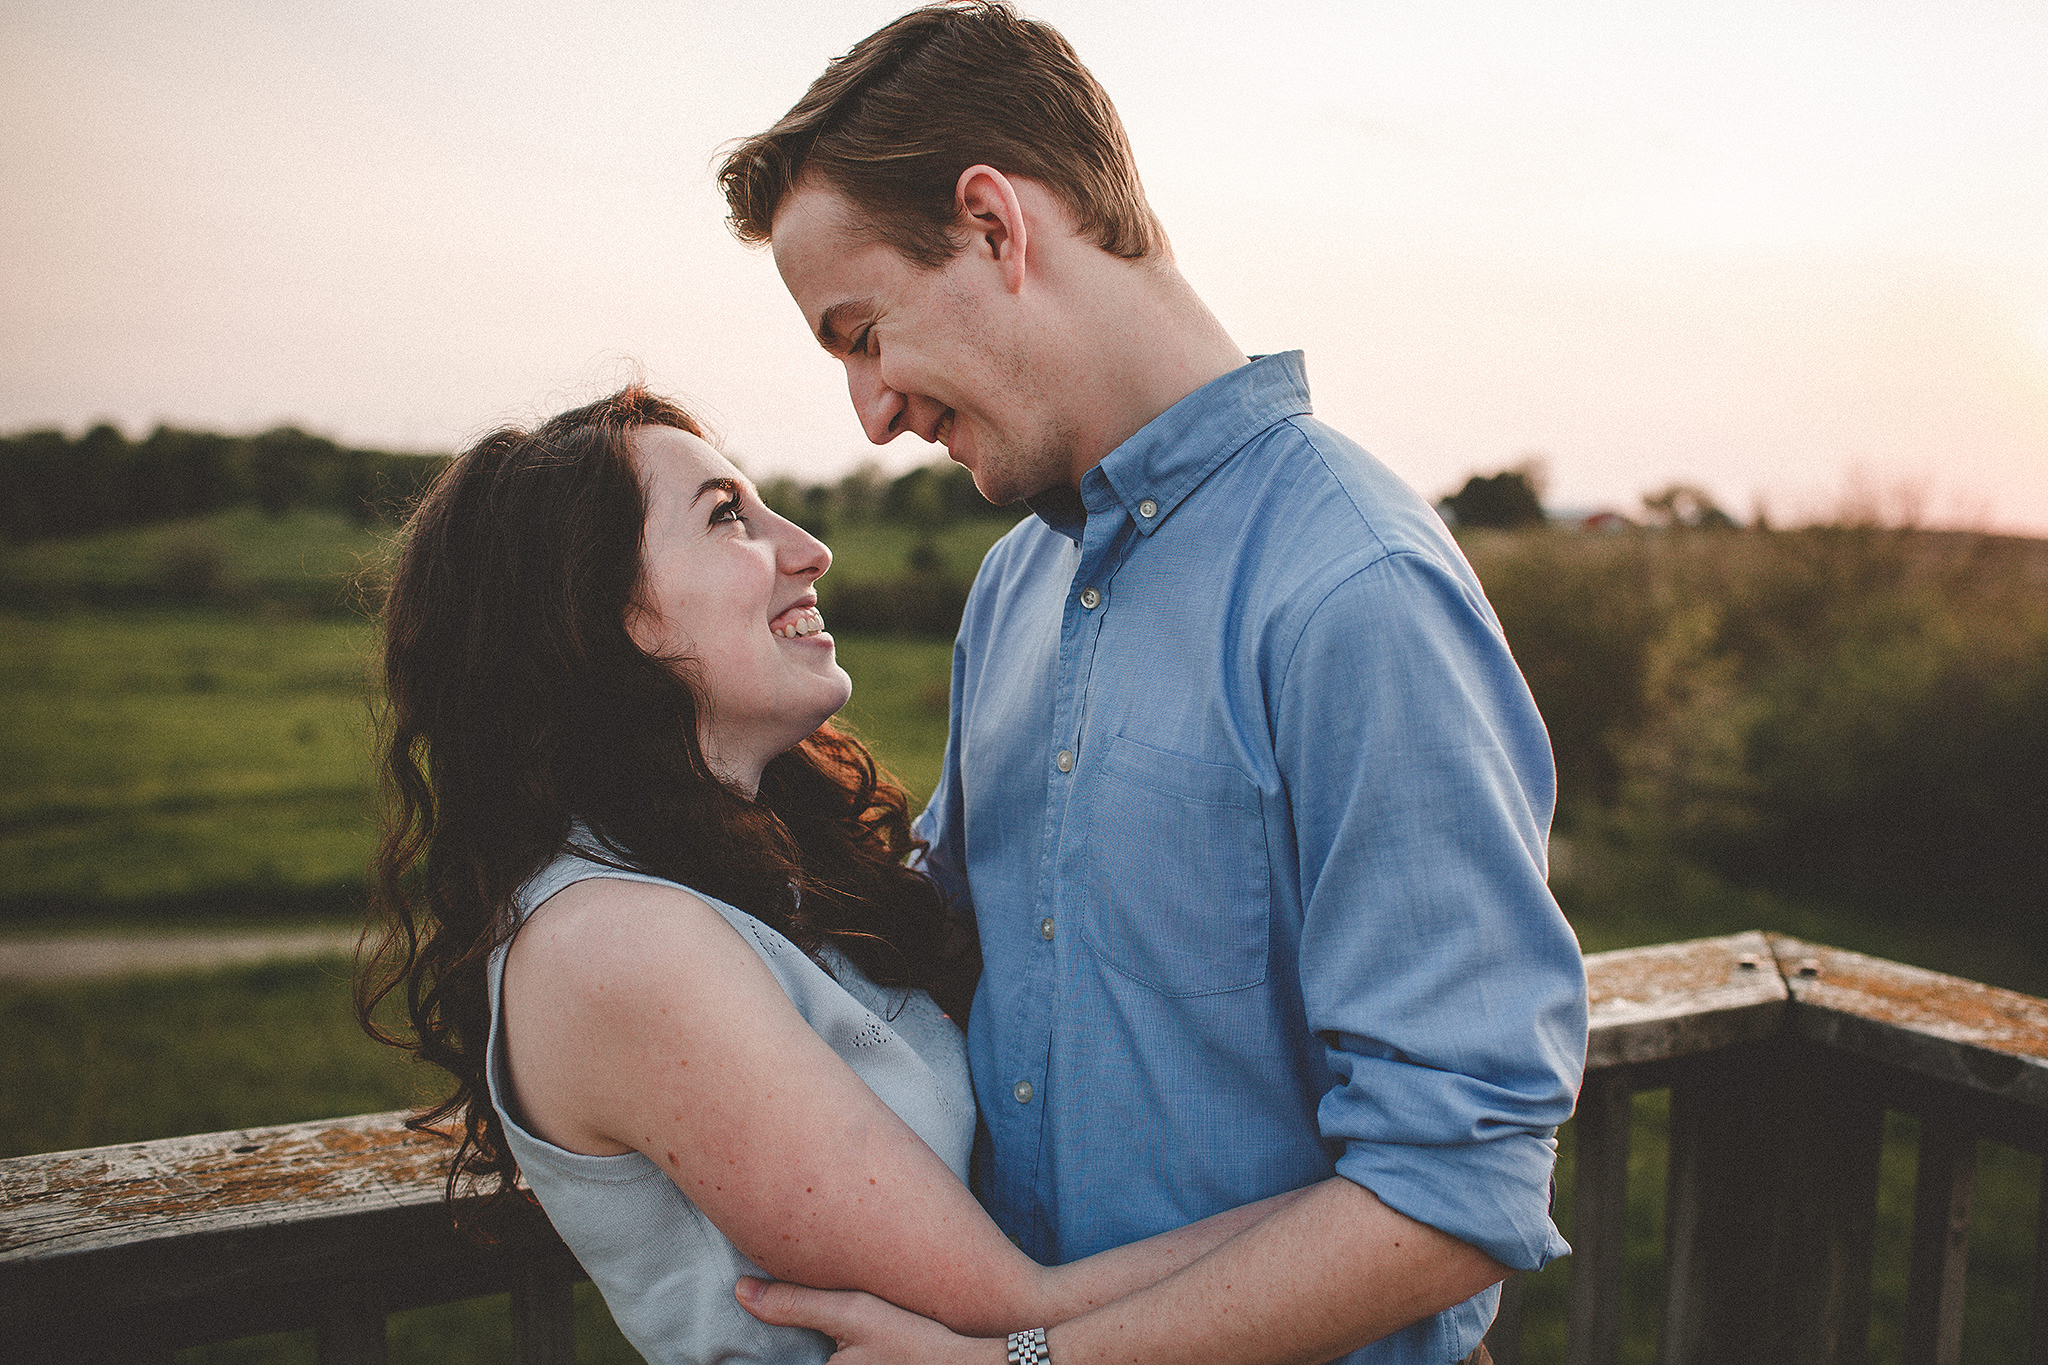 Outdoor forest preserve sunset engagement photos | DeKalb, IL Wedding Photographer | Chrissy Deming Photography